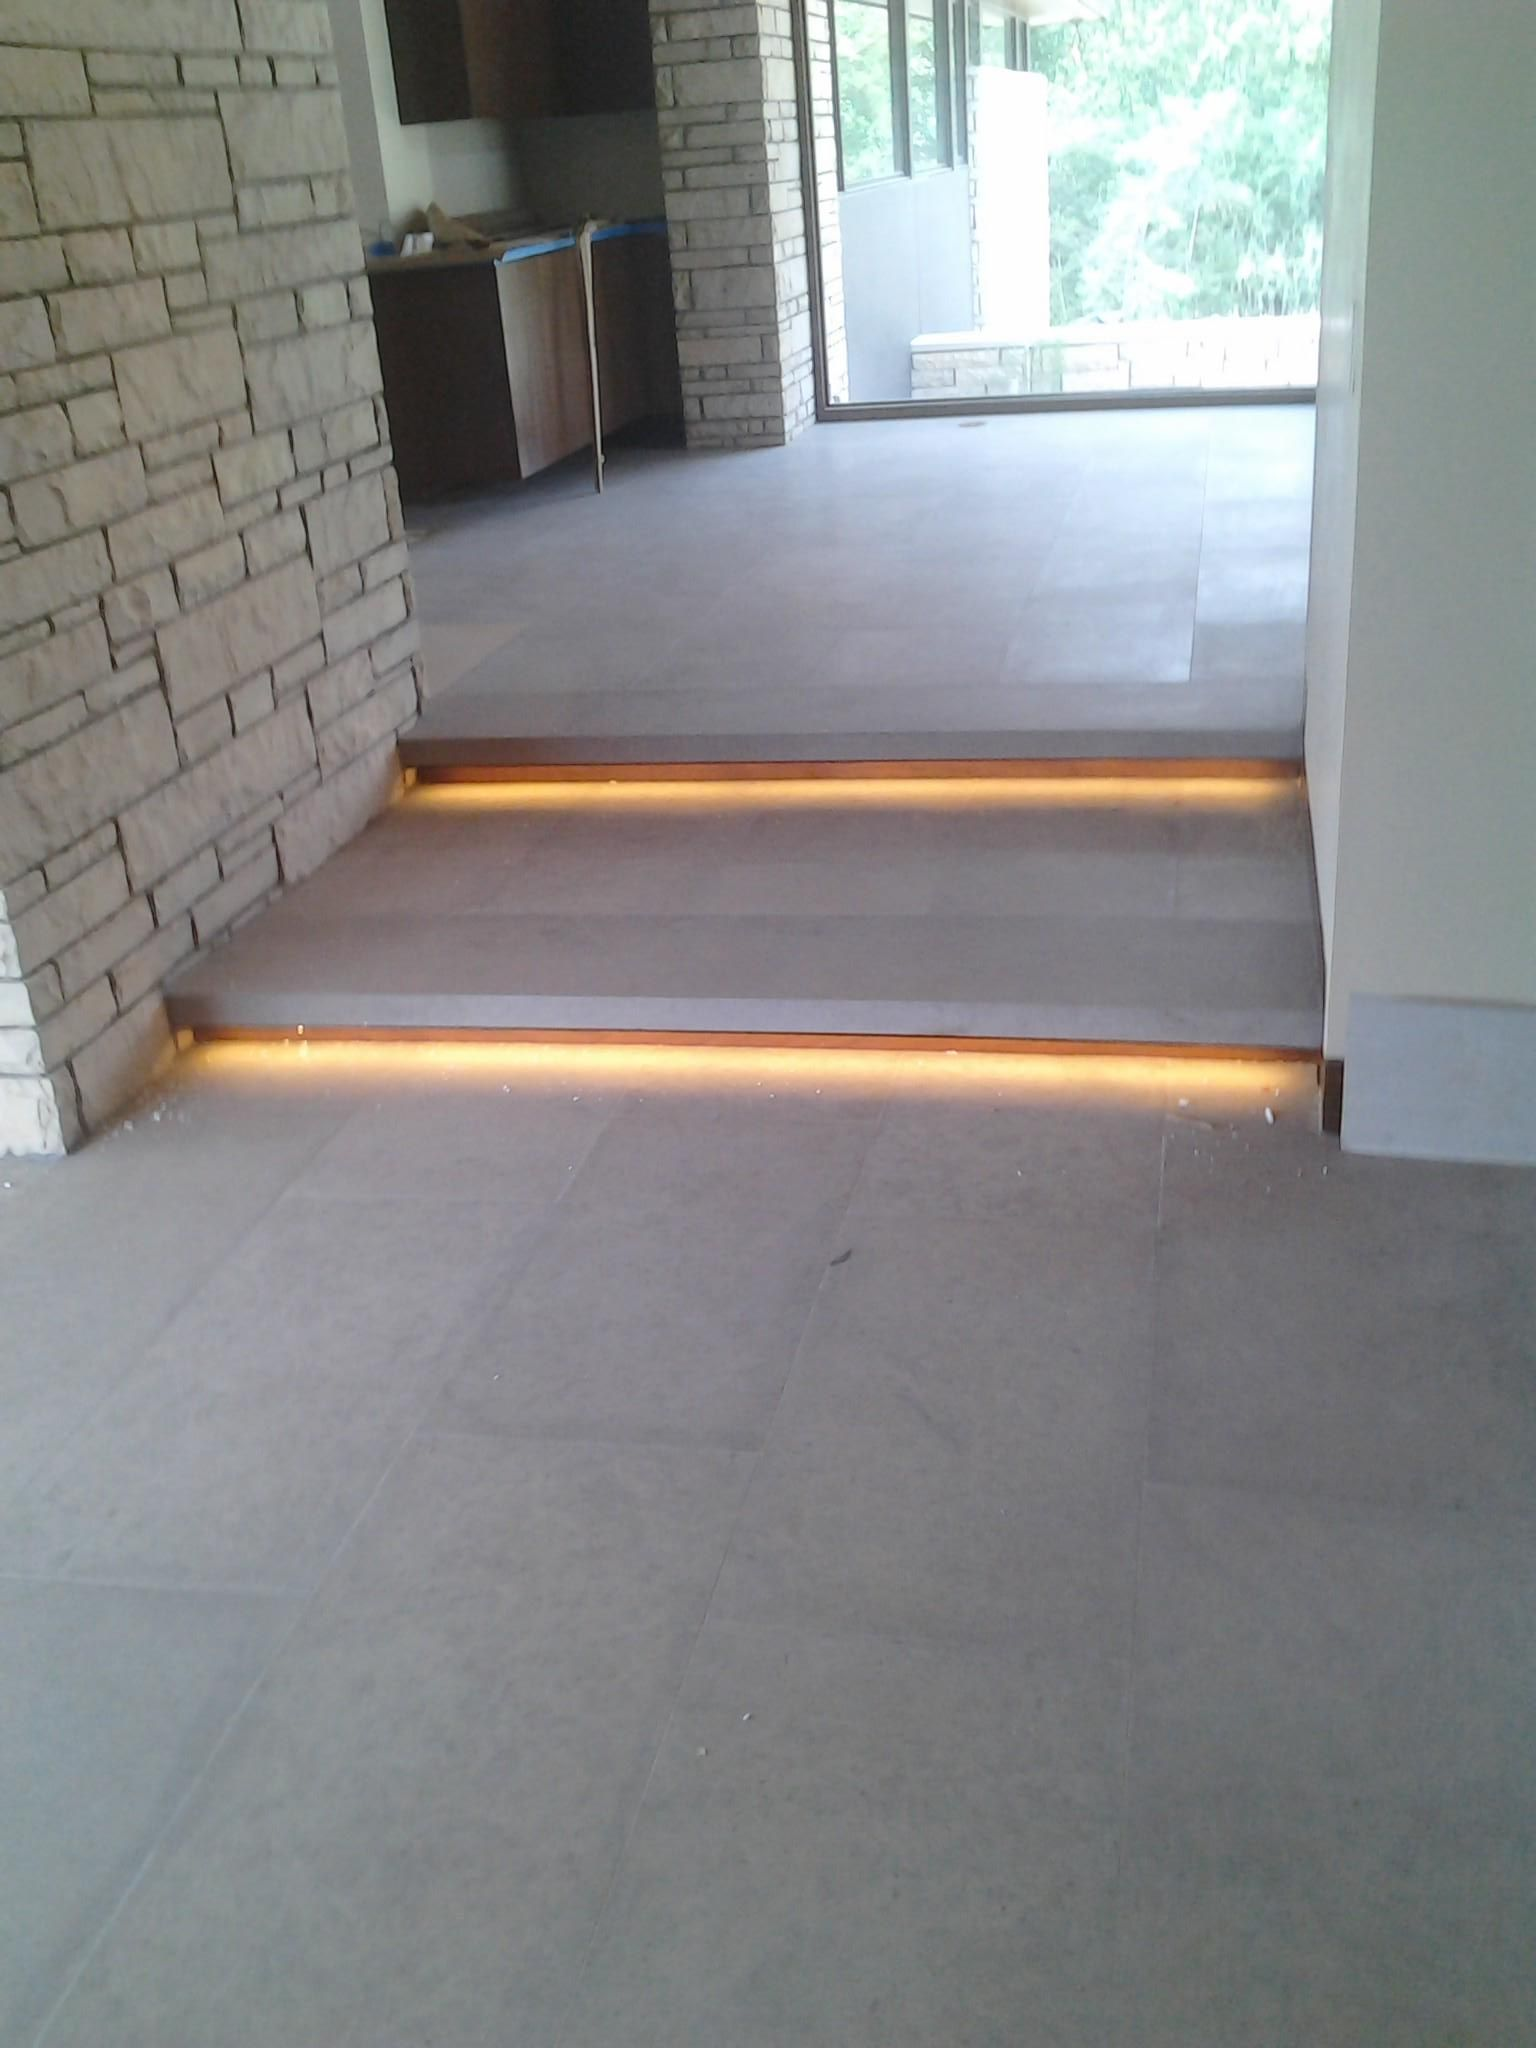 Led Energy Saving Lights Strip Lighting Fixture Systems Step Lighting Outdoor Step Lighting Led Step Lights